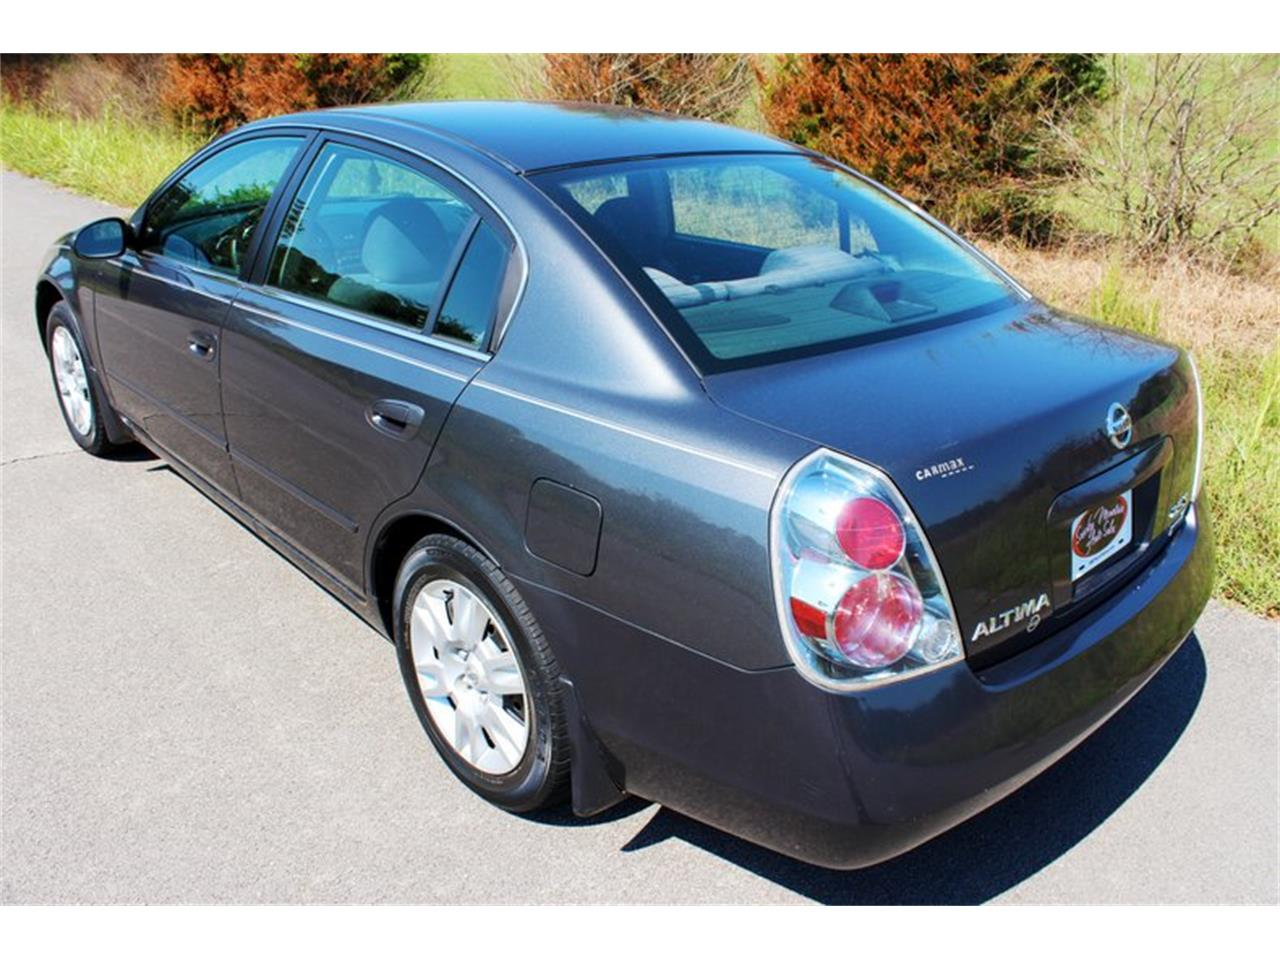 2006 altima nissan lenoir tennessee classic cc classiccars financing inspection insurance transport